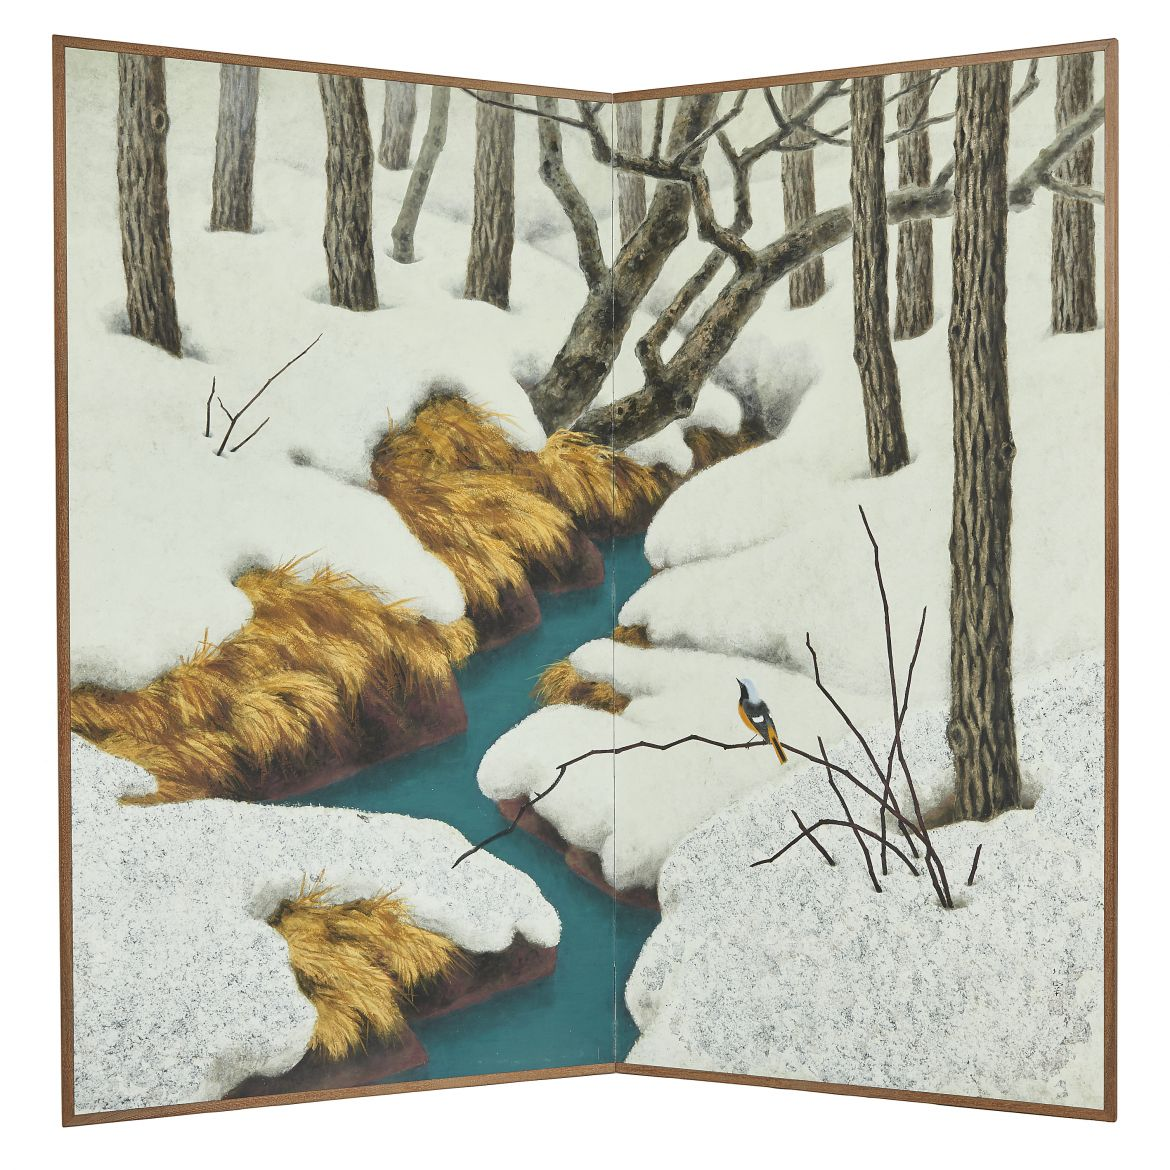 Painted Screen of Snow Covered Forest